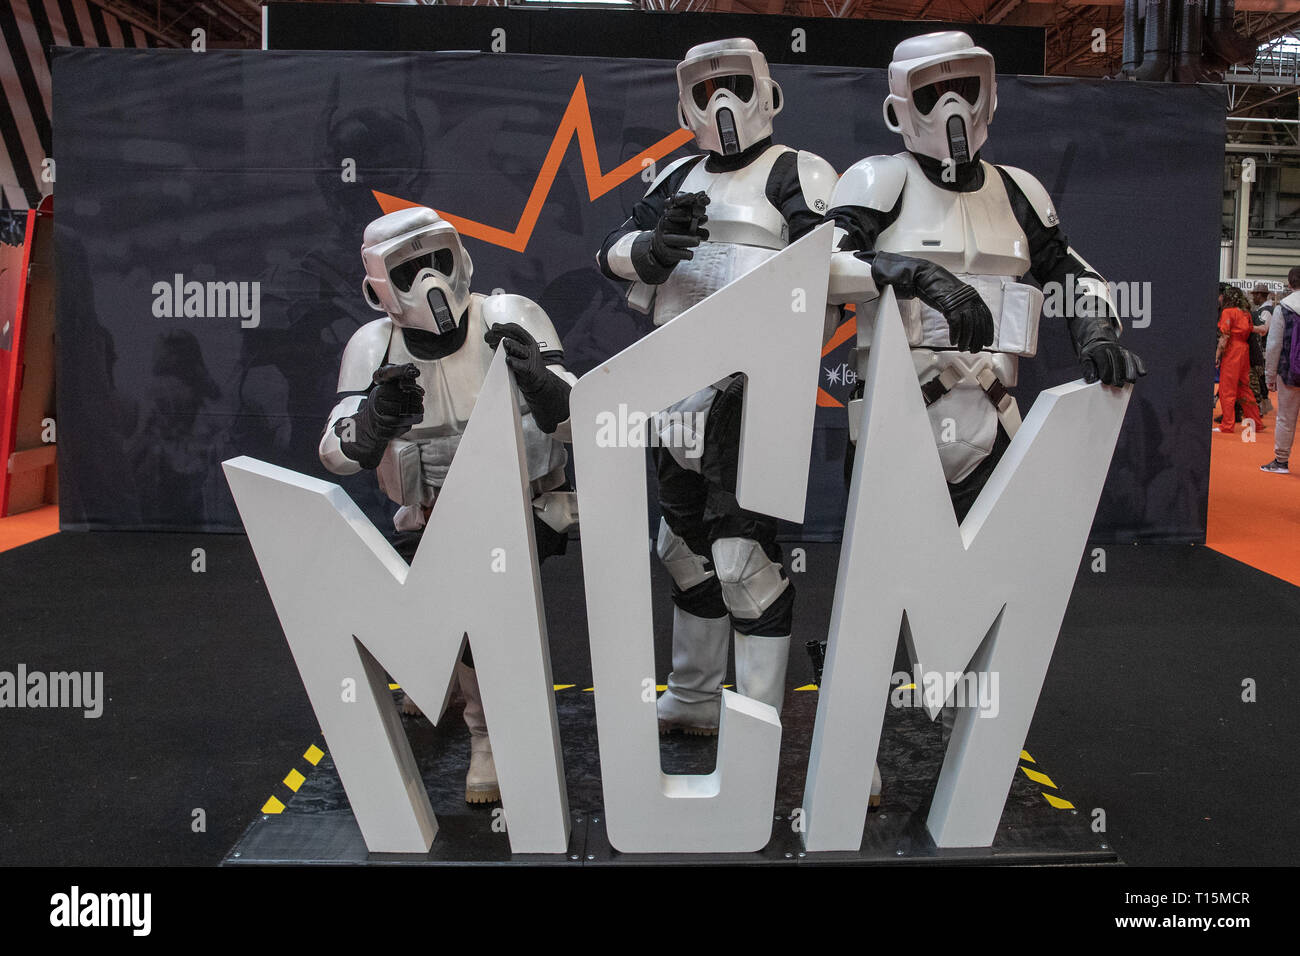 Birmingham, UK. Saturday 23 March 2019. Cosplayers seen in character as Stormtroopers on the 1st day of the MCM Comic Con Birmingham at the NEC  , © Jason Richardson / Alamy Live News - Stock Image